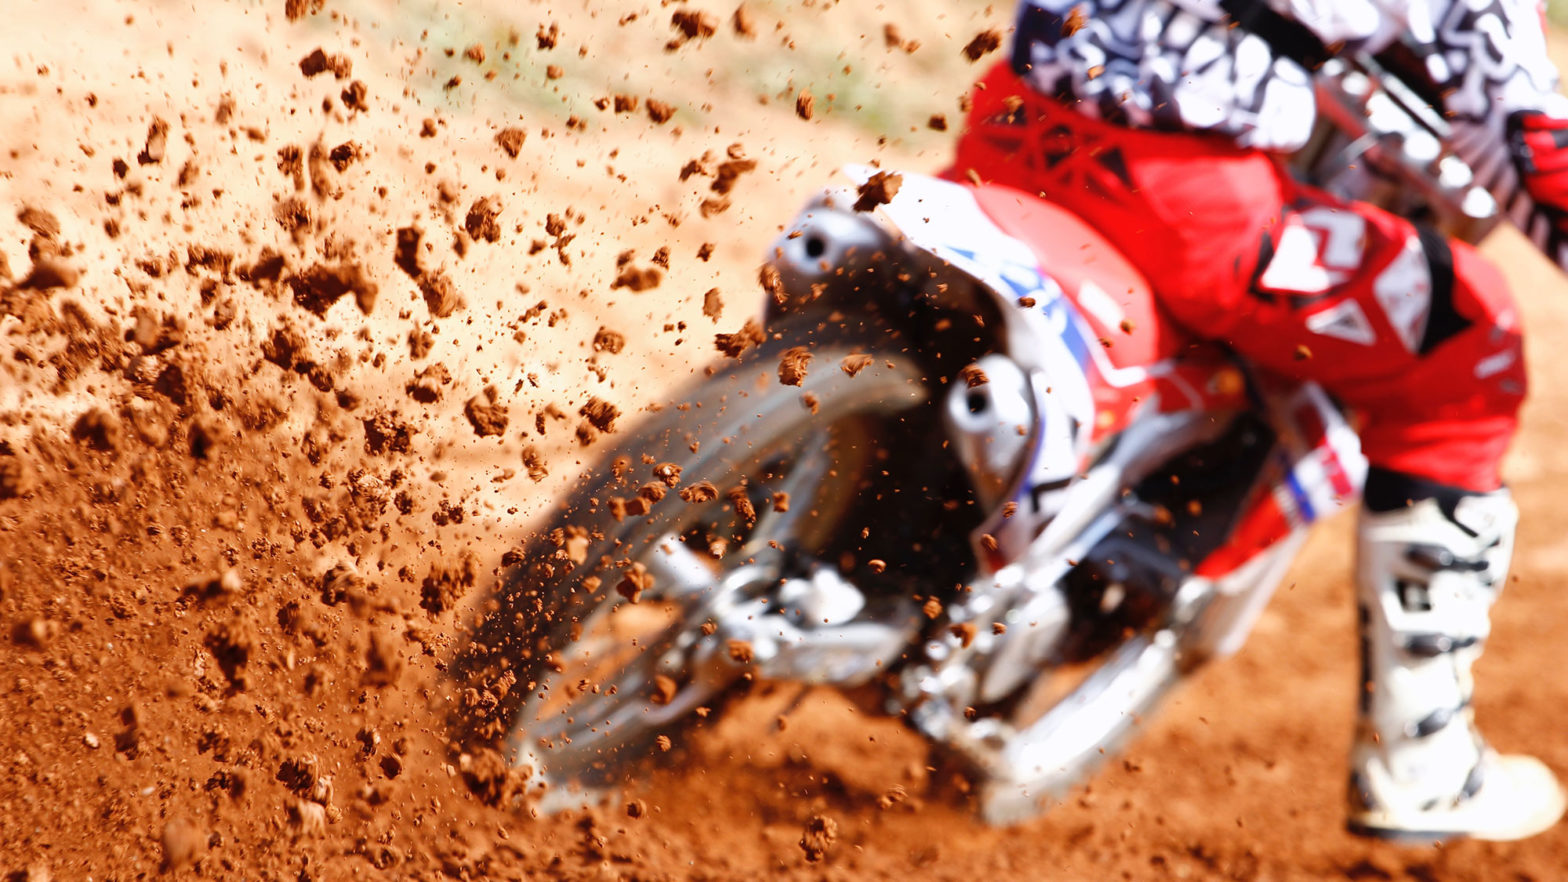 Five Motocross Safety Guidelines